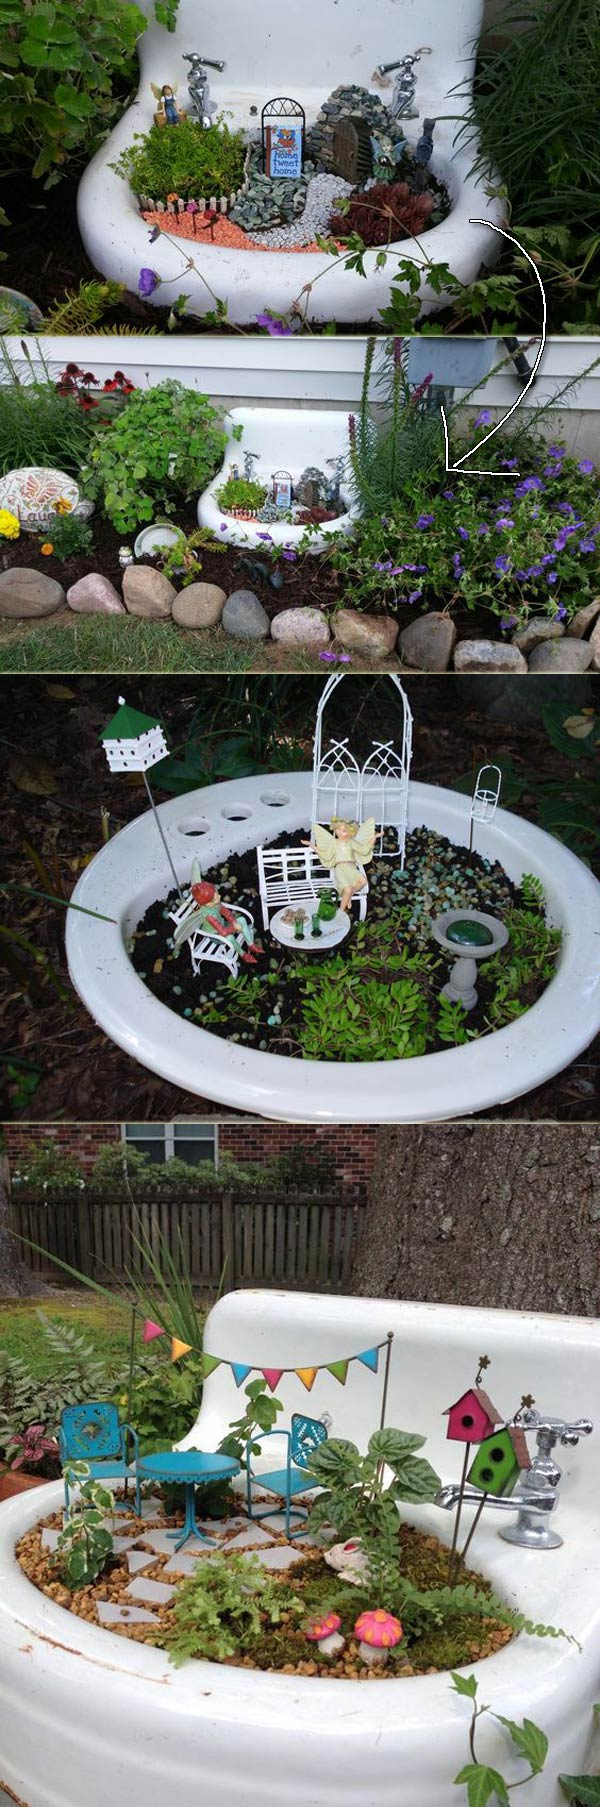 Broken Bathroom Sink Fairy Garden